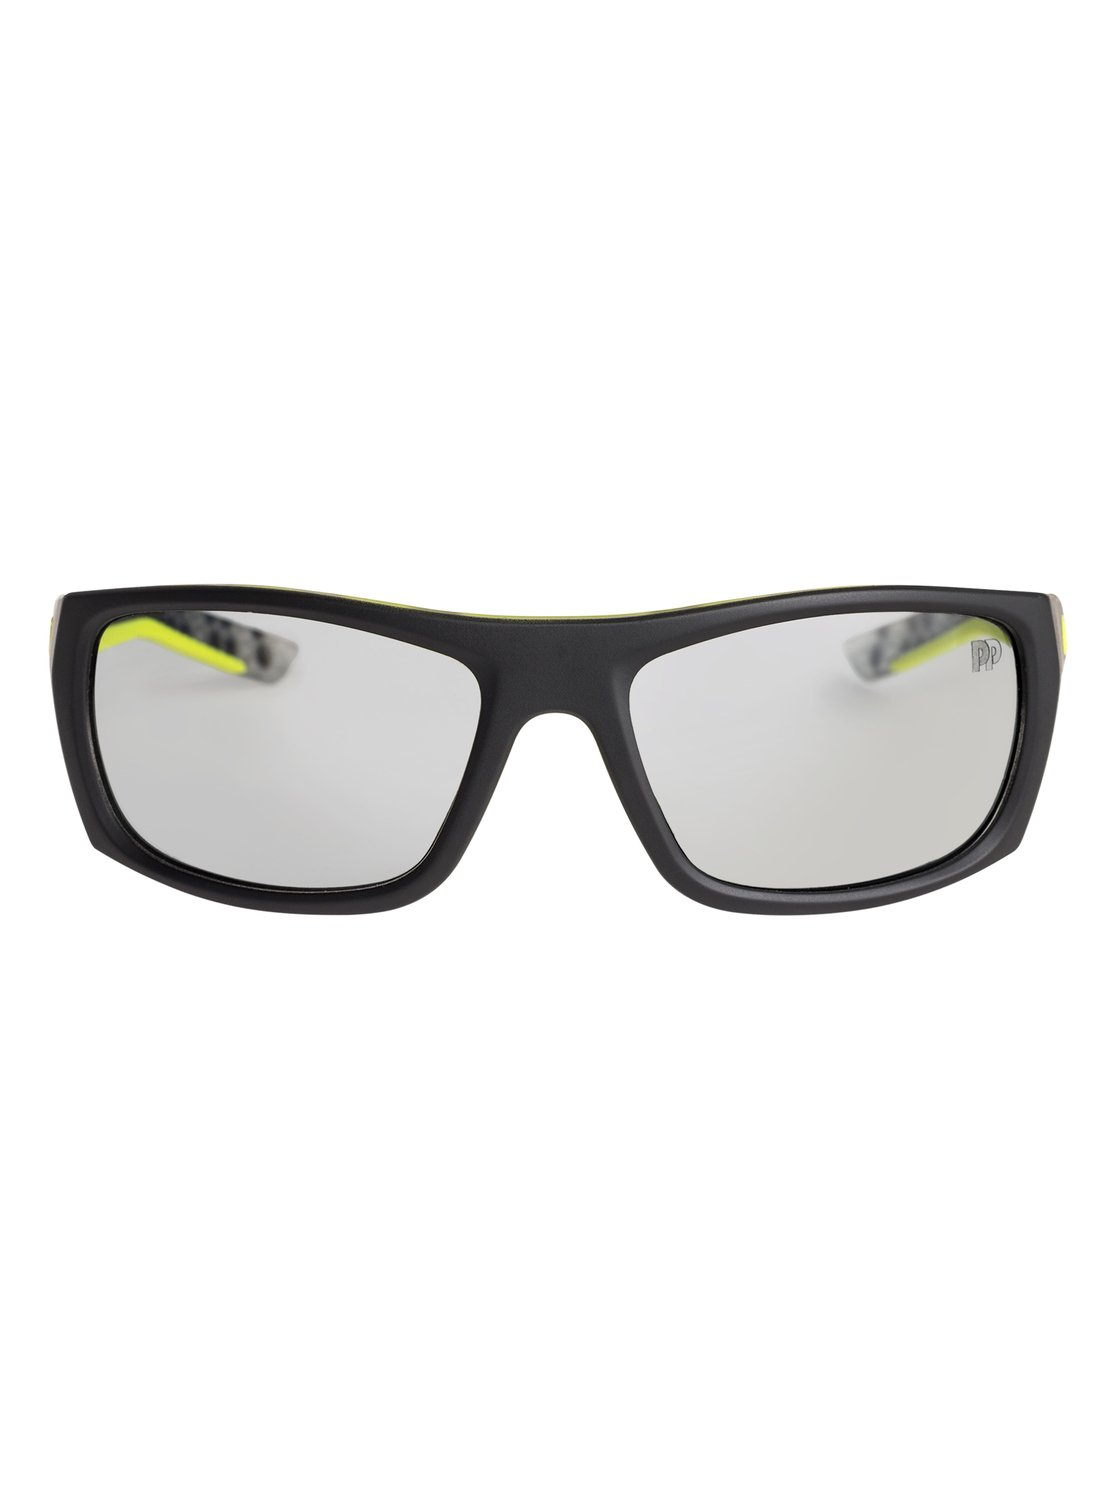 Quiksilver Sonnenbrille »Knockout Photochromic Polarised«, schwarz, black